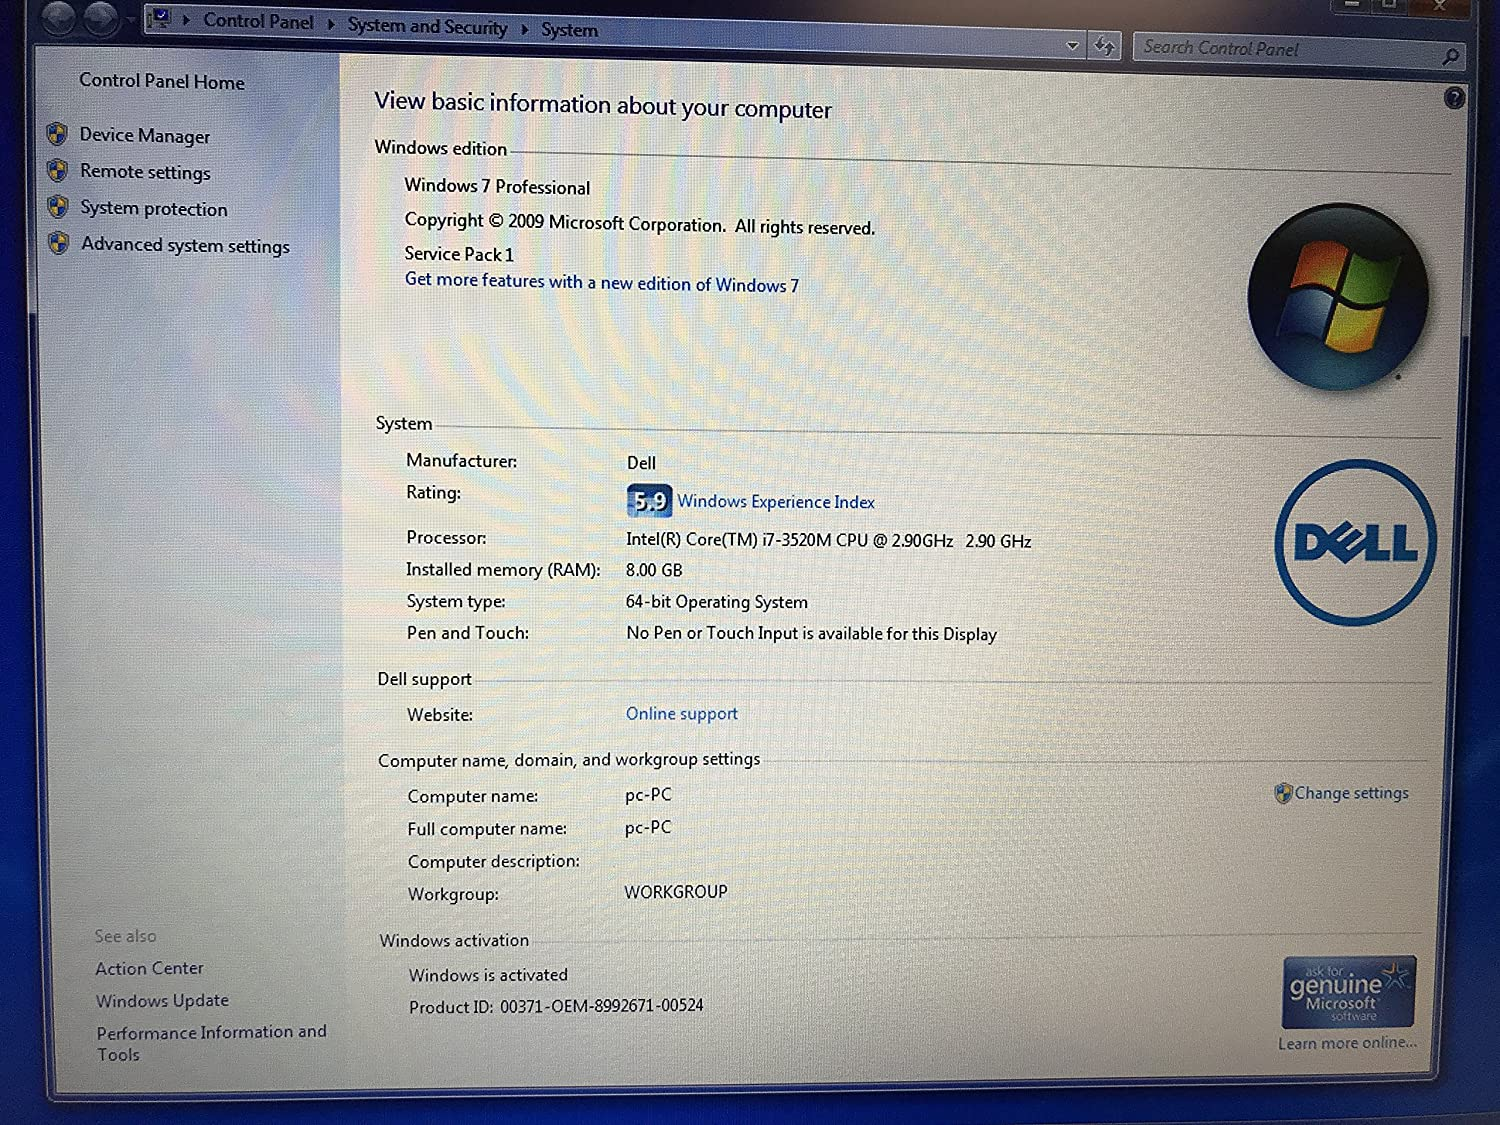 Amazon.com: Dell Latitude E6530 Core i7 3520M 2.90GHz 8GB 500GB nVidia 15.6